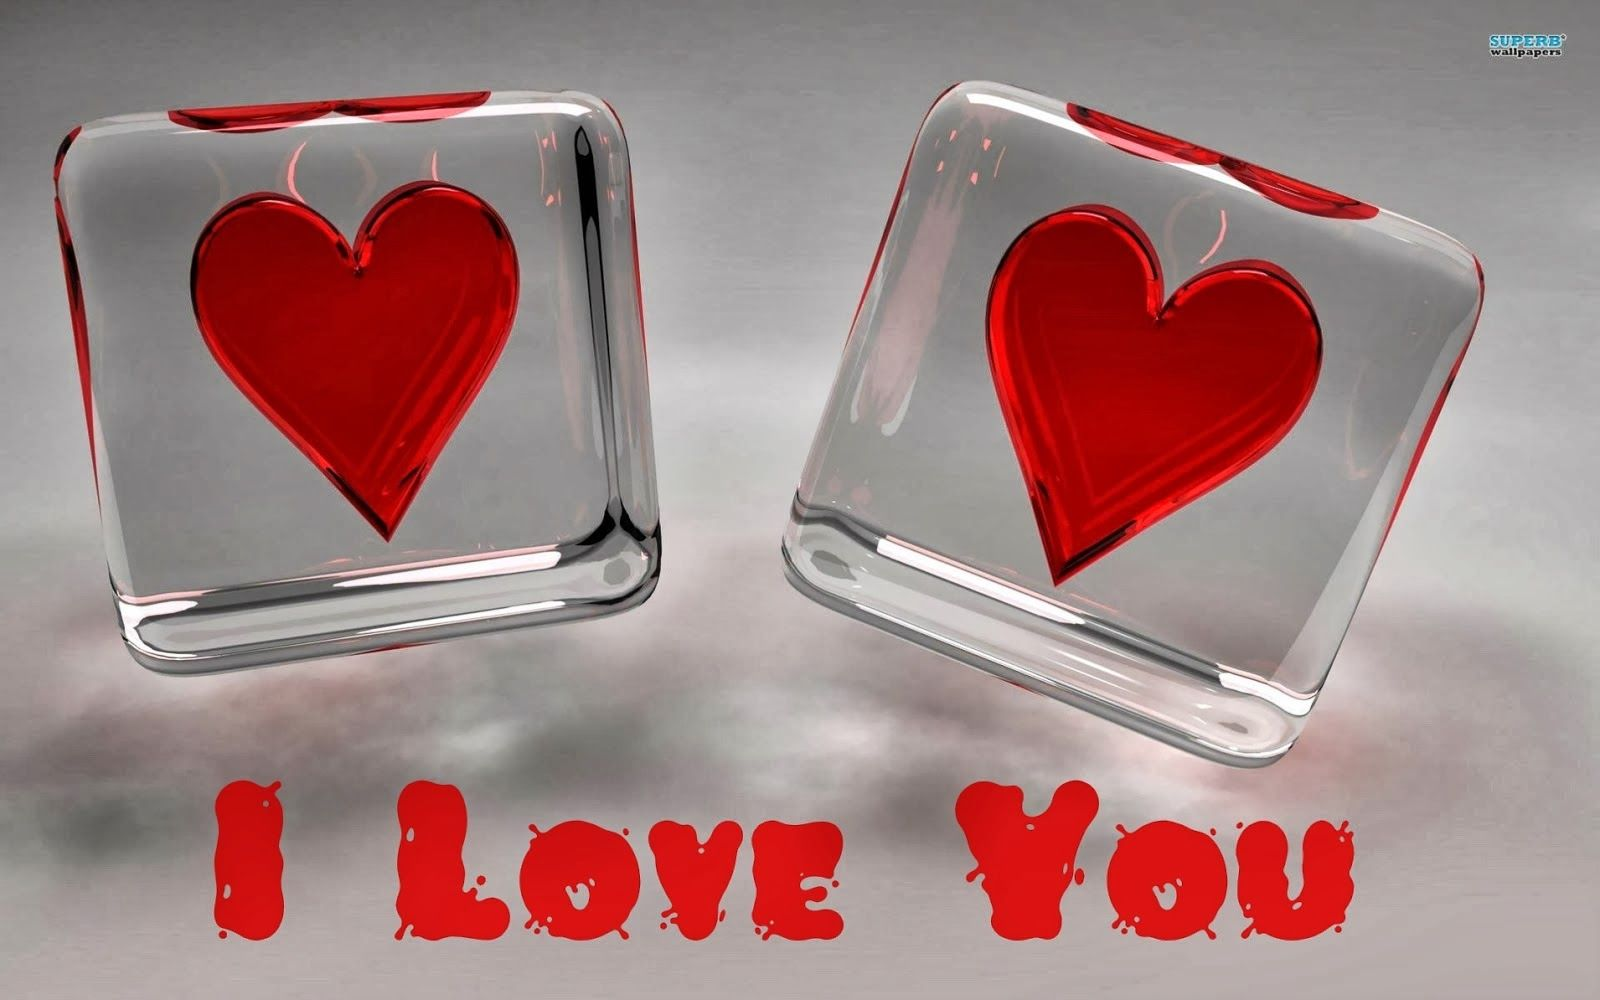 Wallpaper Of I Really Love You Hd Download New Wallpaper